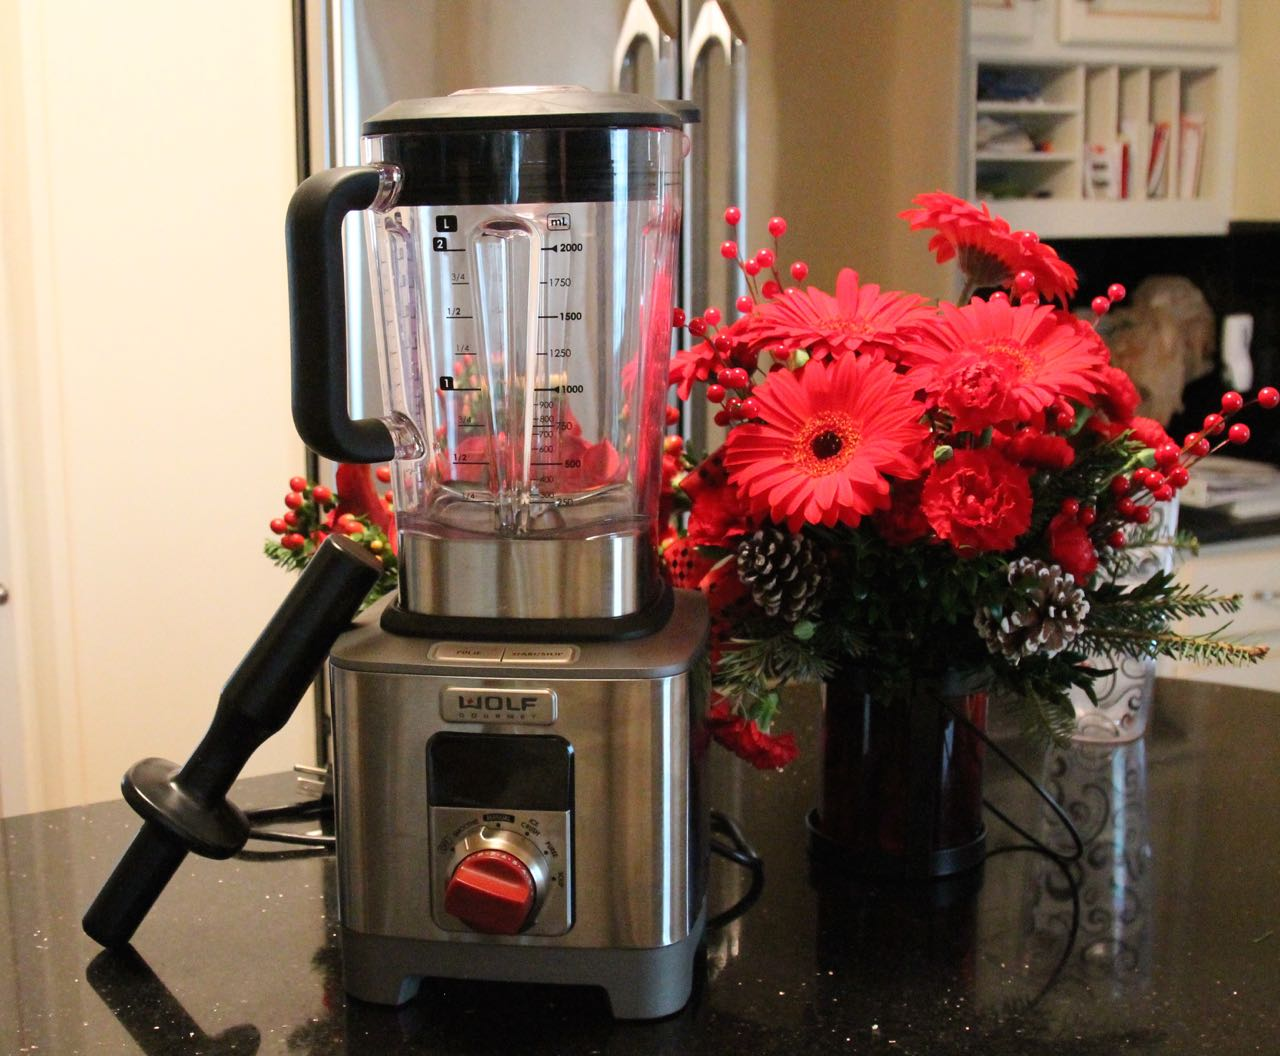 The Wolf Gourmet Blender, Review and Giveaway!